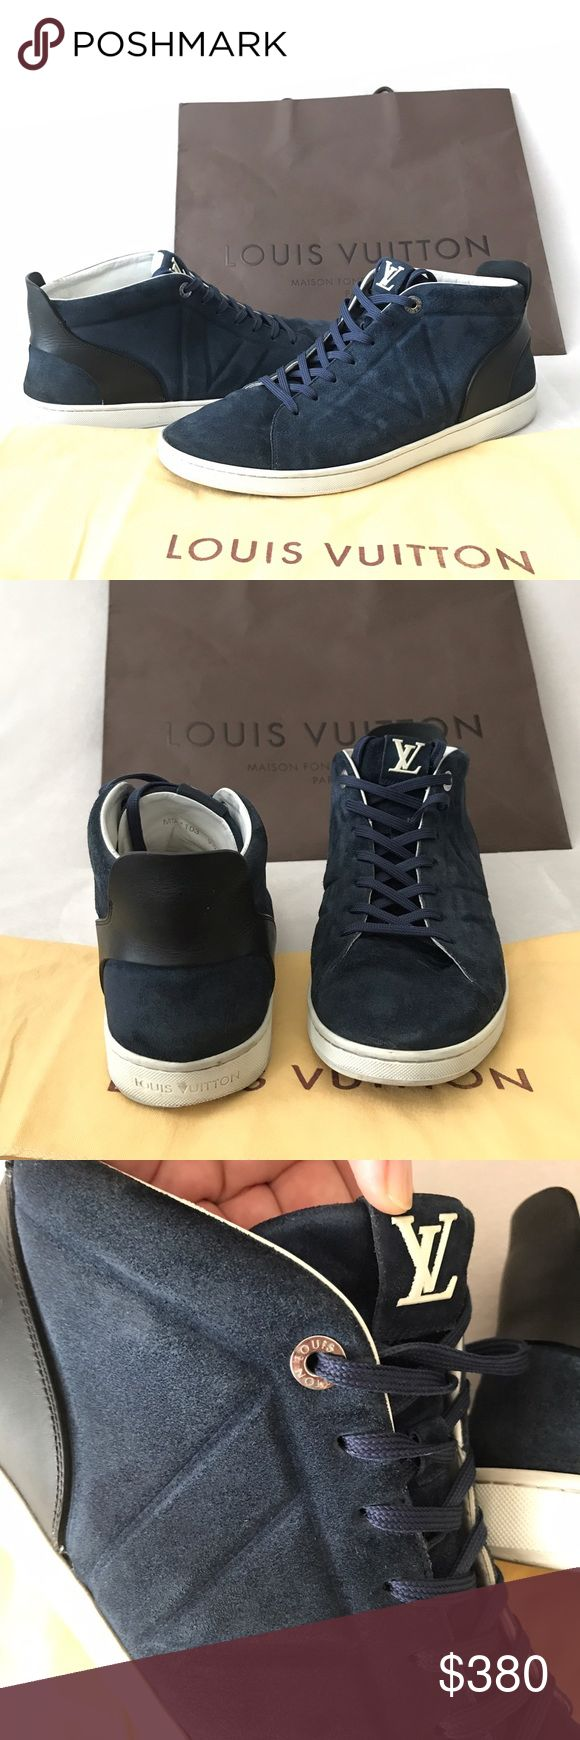 Authentic Louis Vuitton Men's Fuselage Sneakers Authentic Rare Louis Vuitton Blue Fuselage High Top Sneakers. They are composed of suede calf Leather and features smooth calf leather trim Louis Vuitton V on the side, LV on the tongs. UK size 9 1/2, fits US 10- 10 1/2. Very good used condition. They come with dust bag and paper bag Louis Vuitton Shoes Sneakers